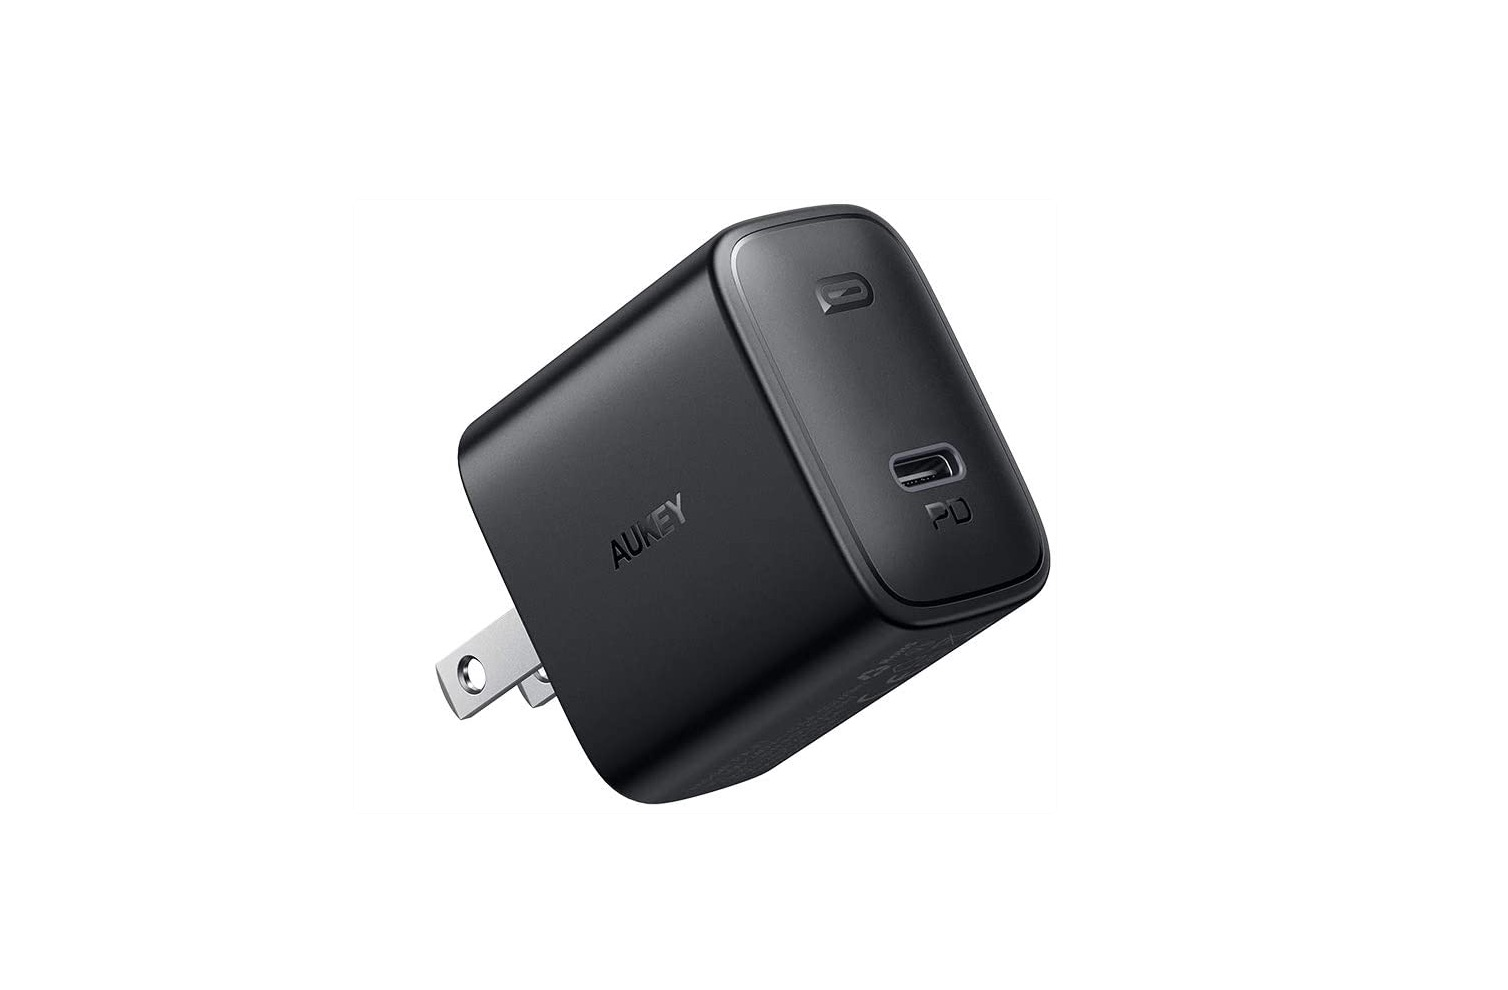 AUKEY 18W Fast Charger With Foldable Plug For iPad & iPhone Falls To $9 At Amazon